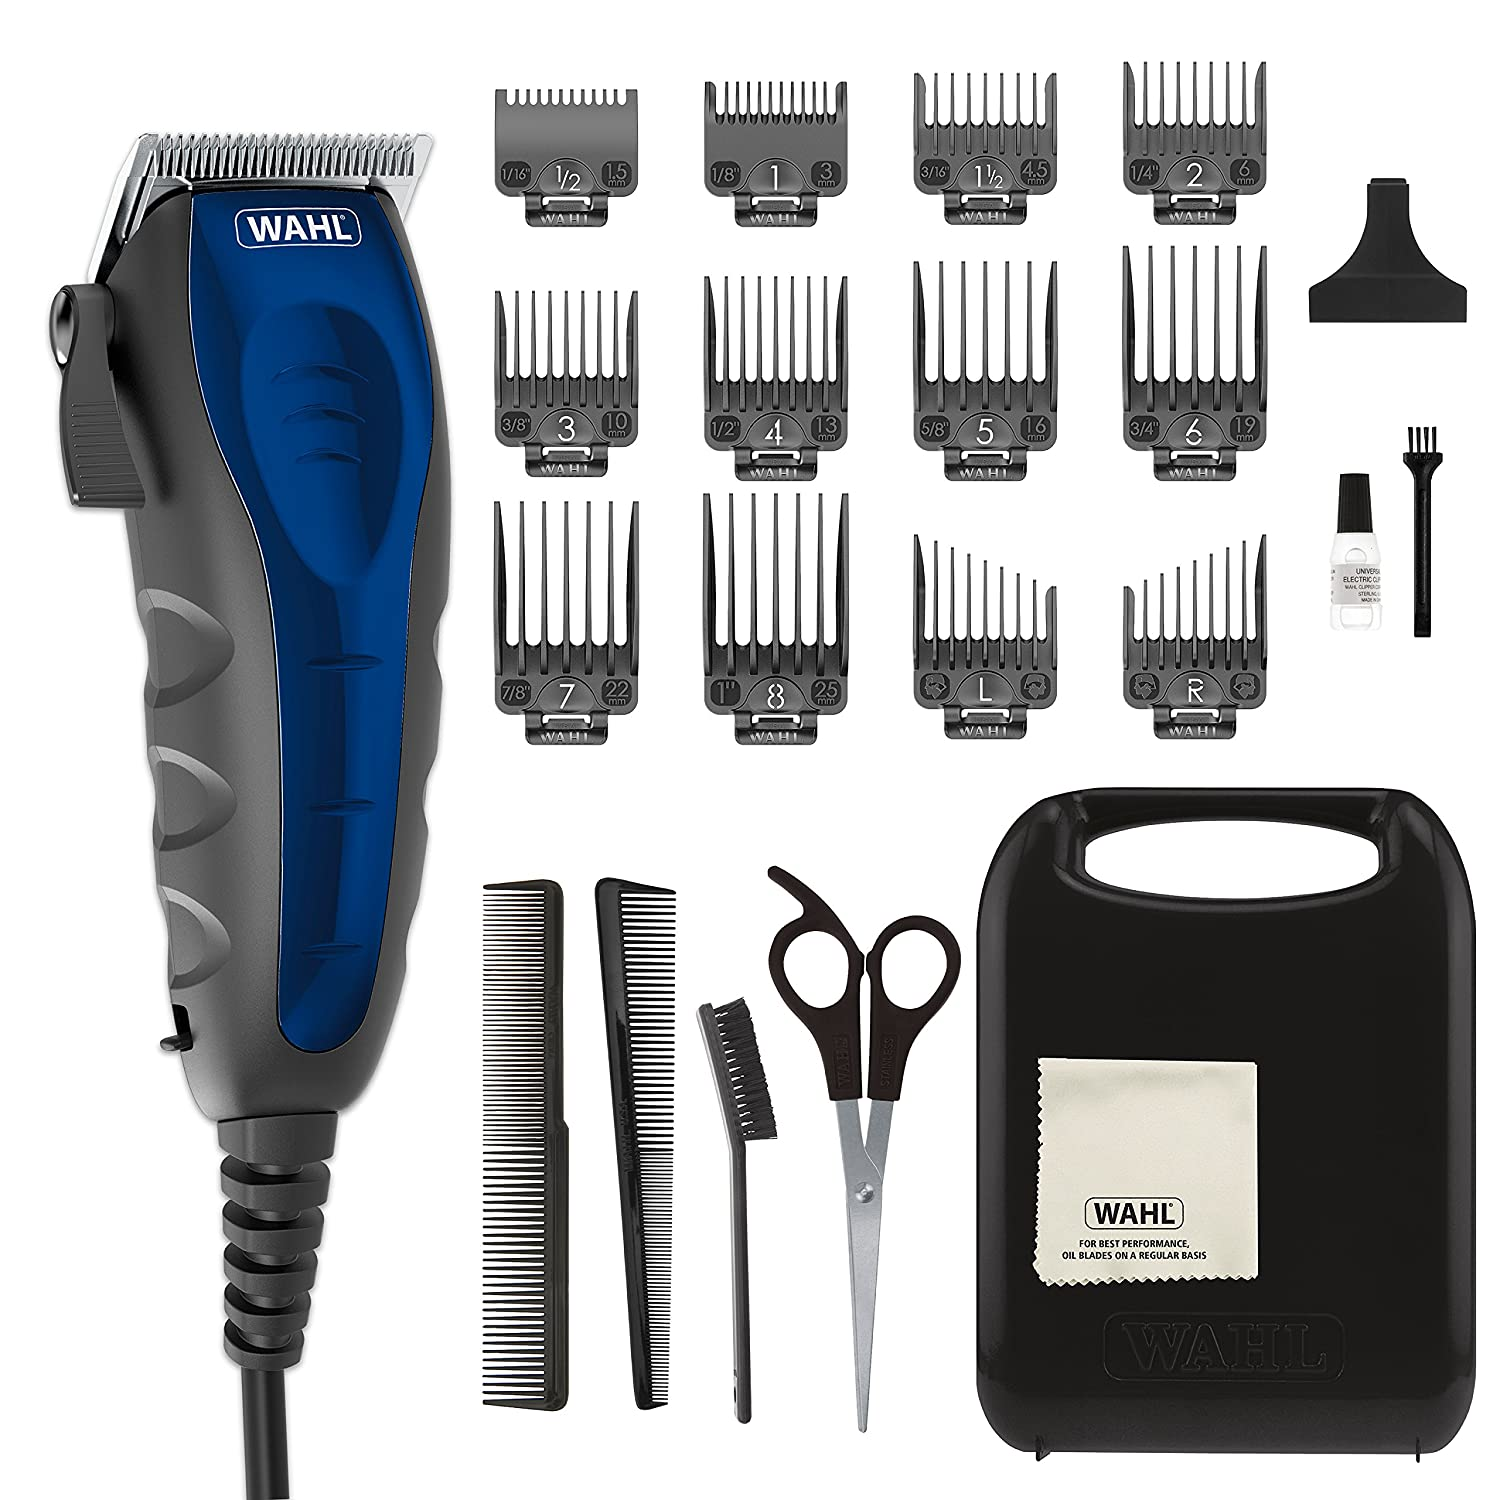 Wahl Self-Cut Personal Haircutting Kit, Wahl model 79467, best hair clippers